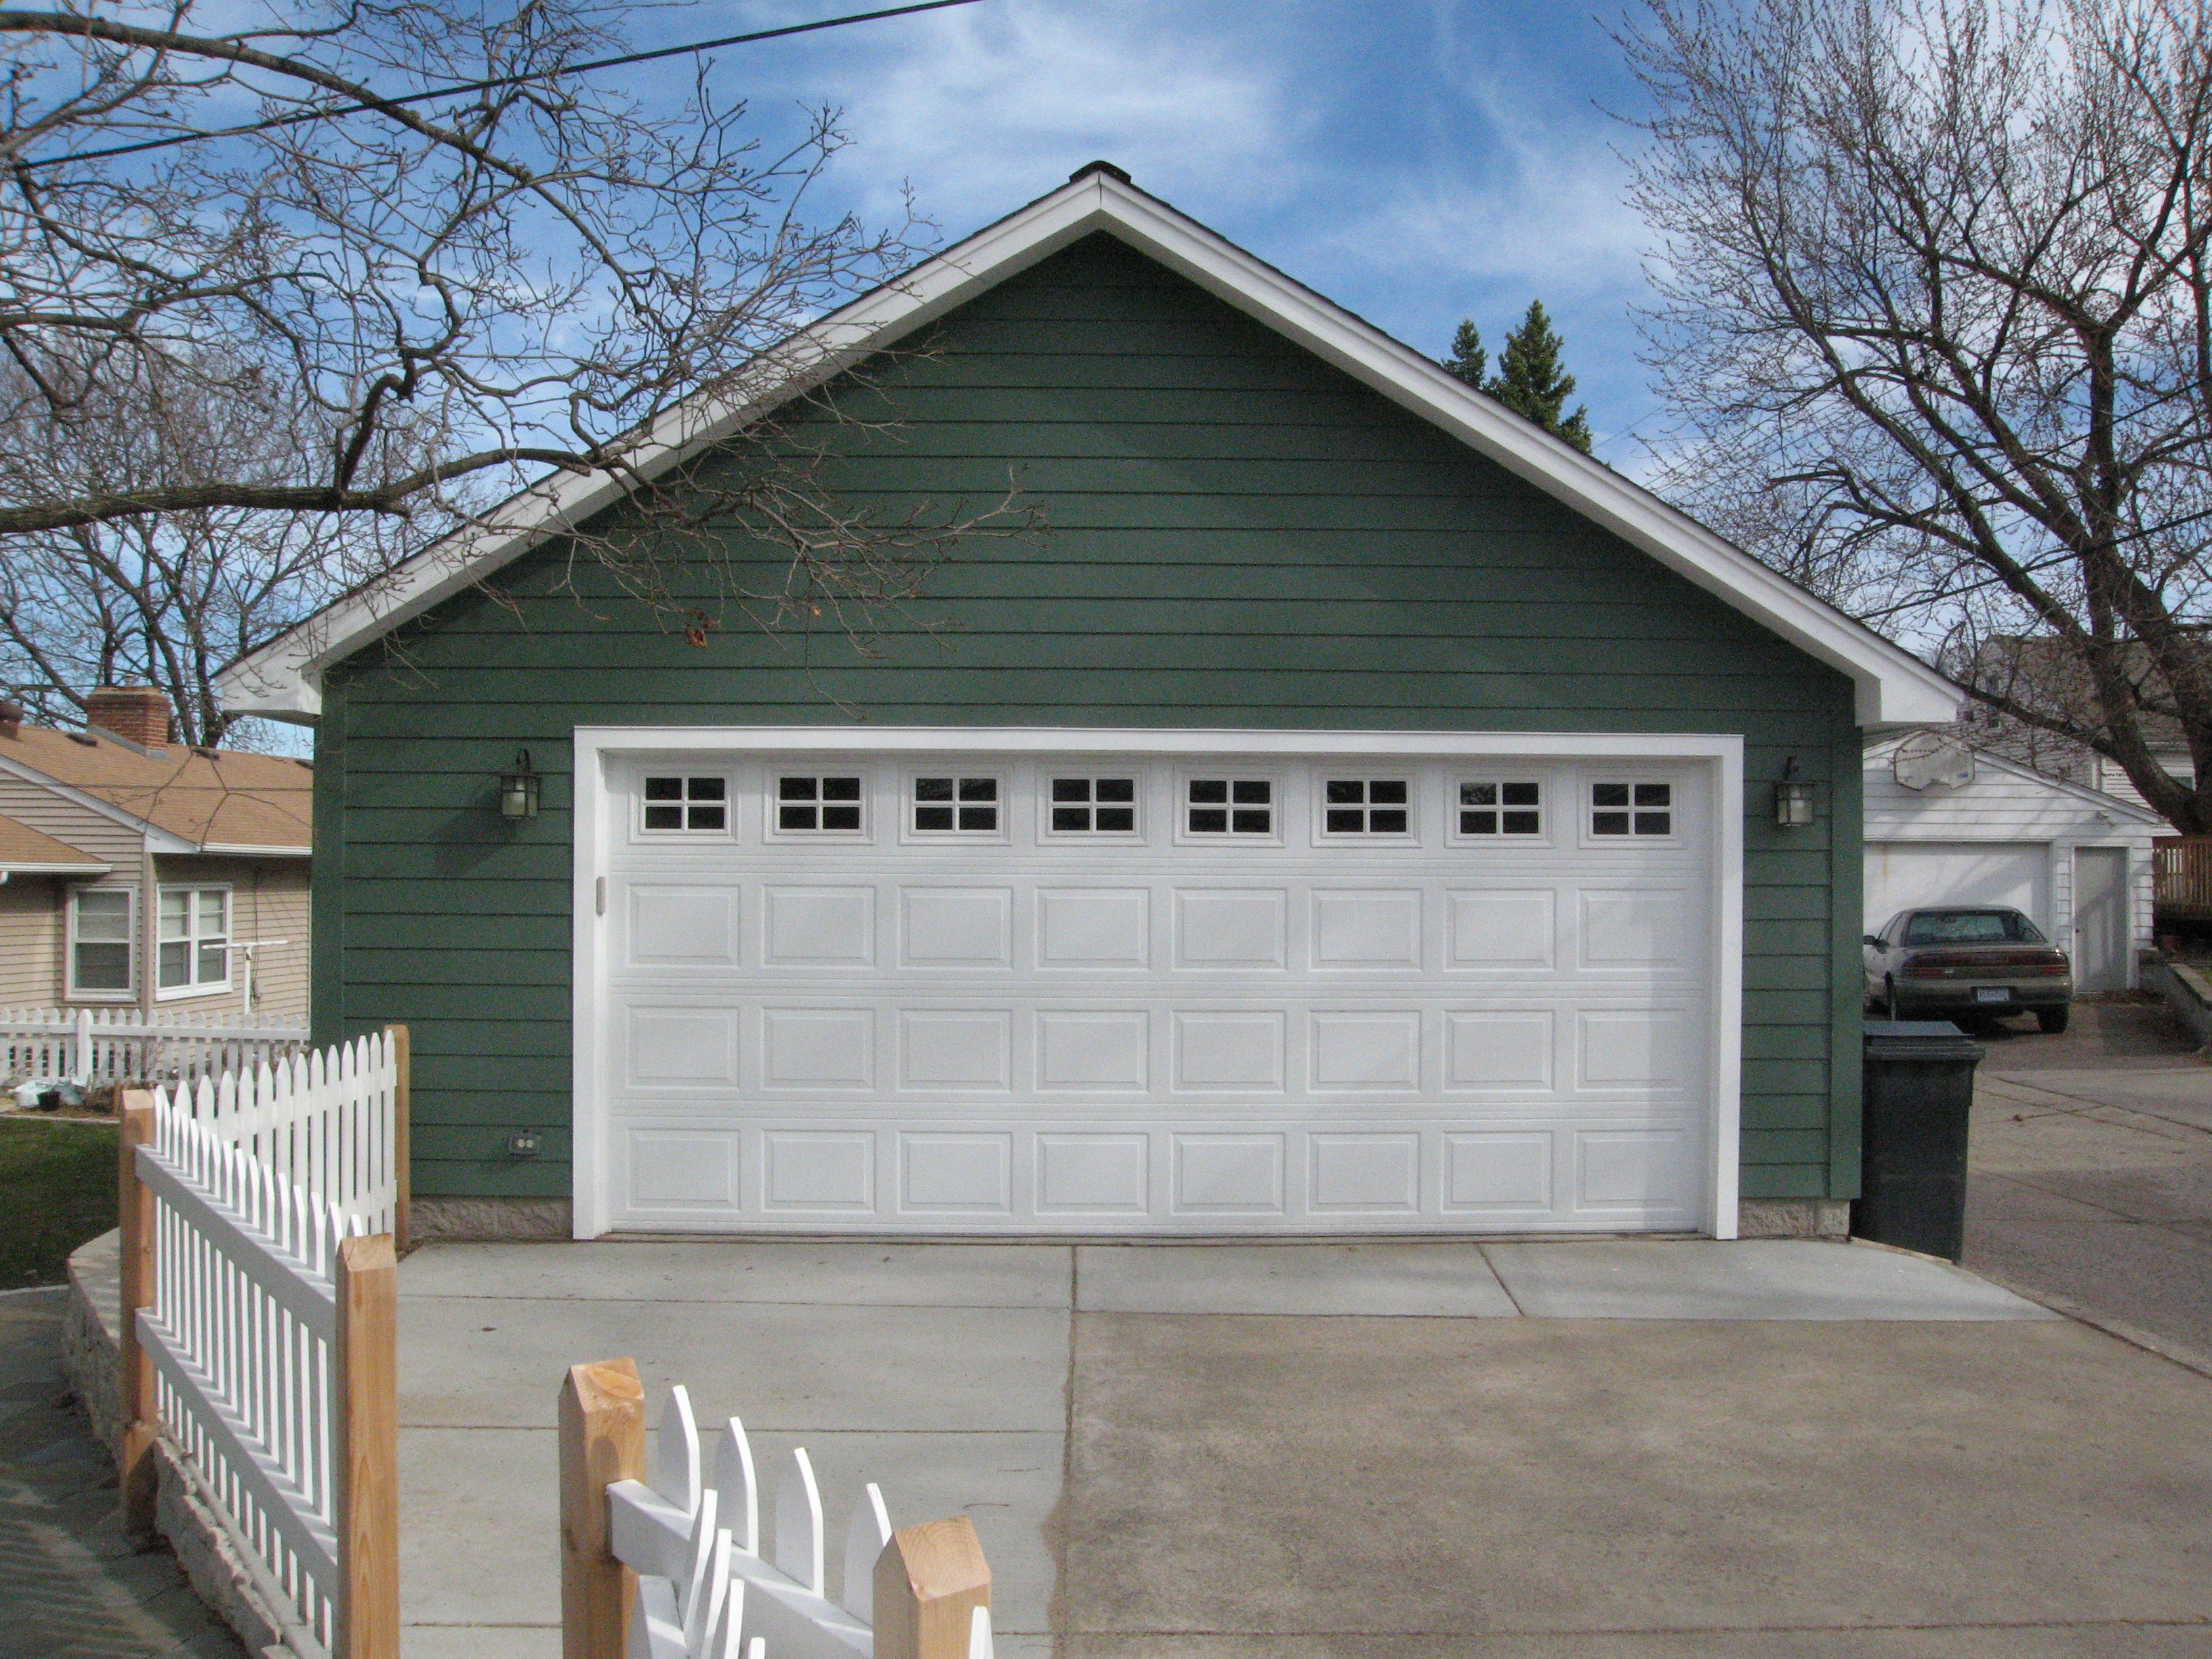 13 Harmonious Free 2 Car Garage Plans Home Design And Decor